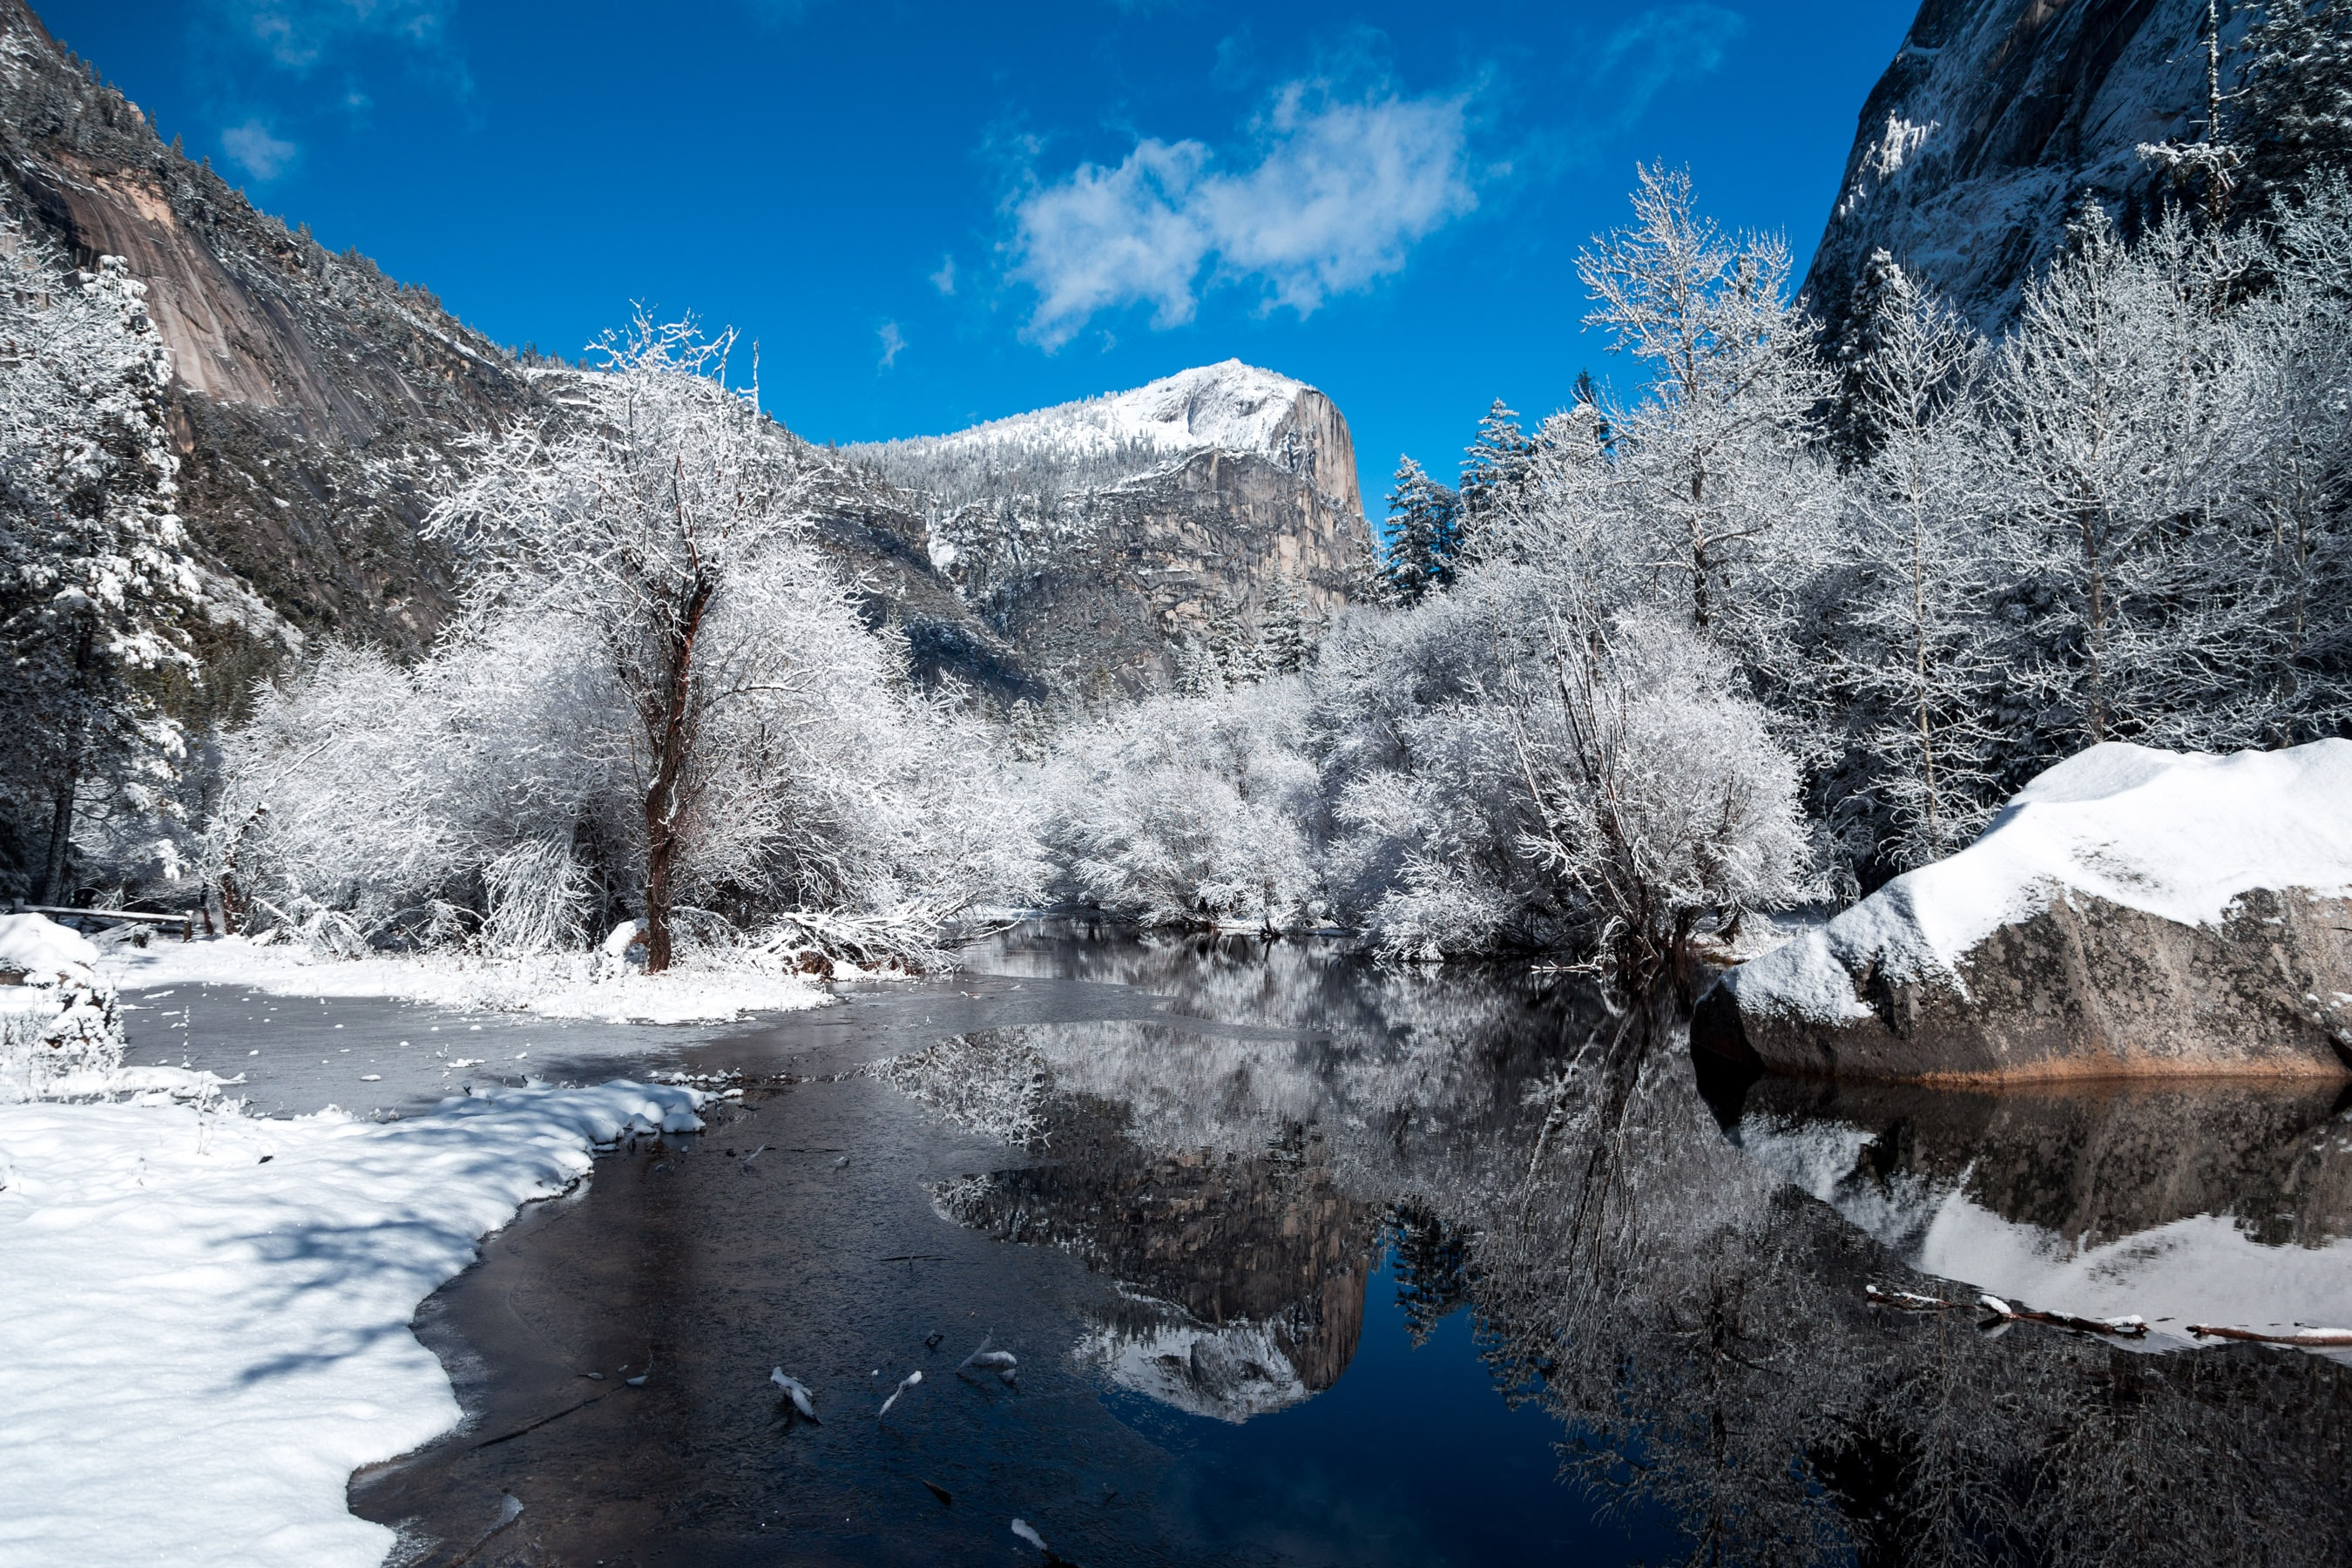 A melting stream in the mountains surrounded by snow-covered trees against a bright blue sky